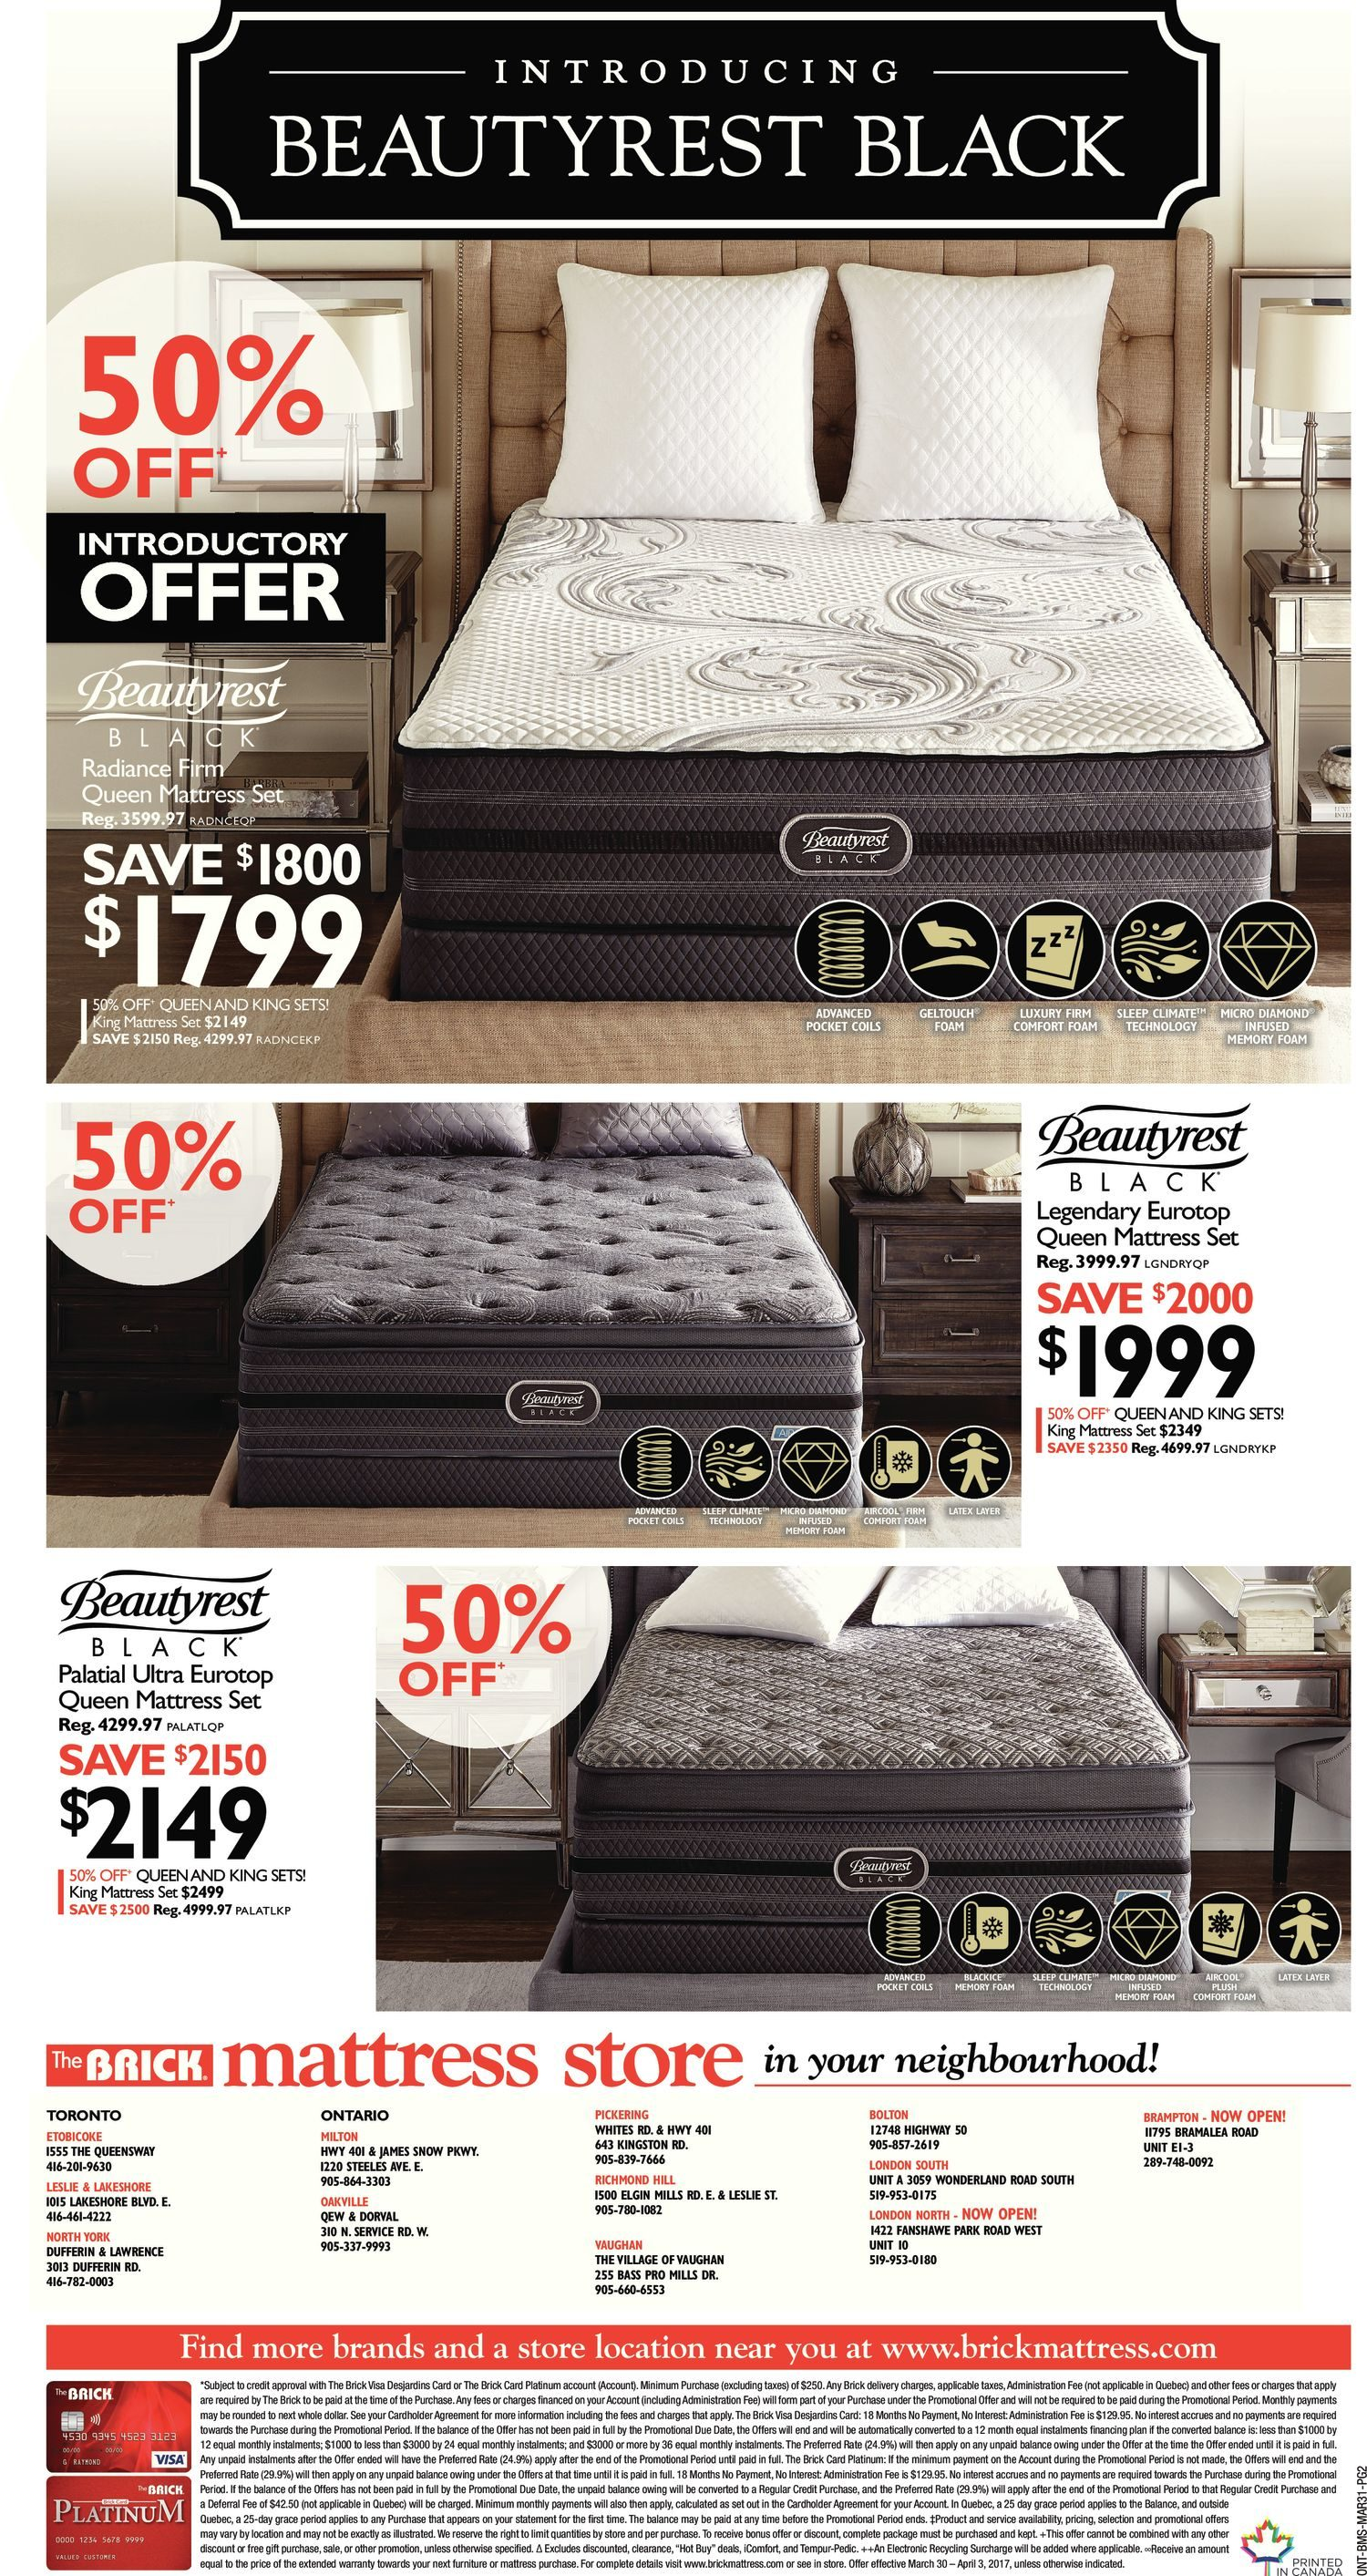 pin coupons mattress weekly com olcatalog may ad firm